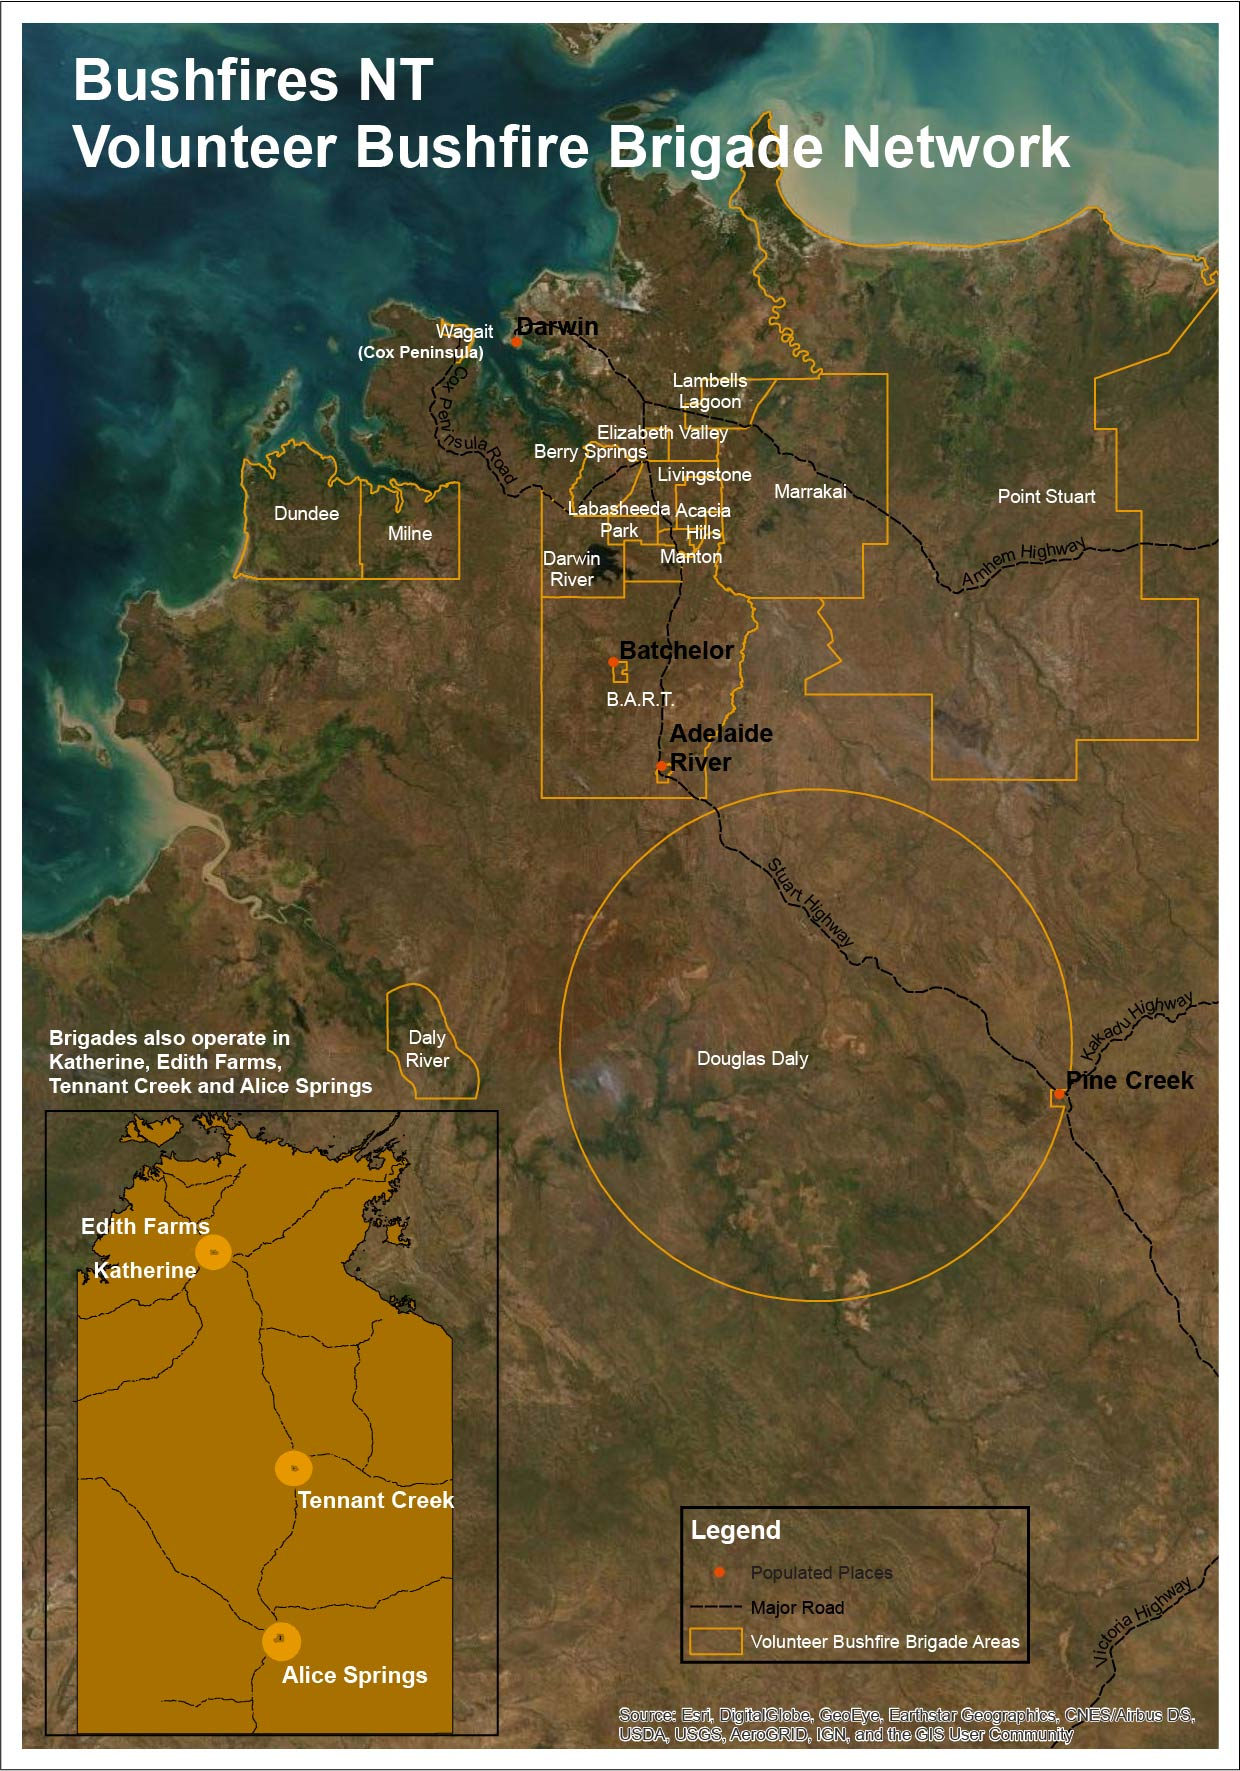 Map showing the areas managed by Volunteer Bushfire Brigades